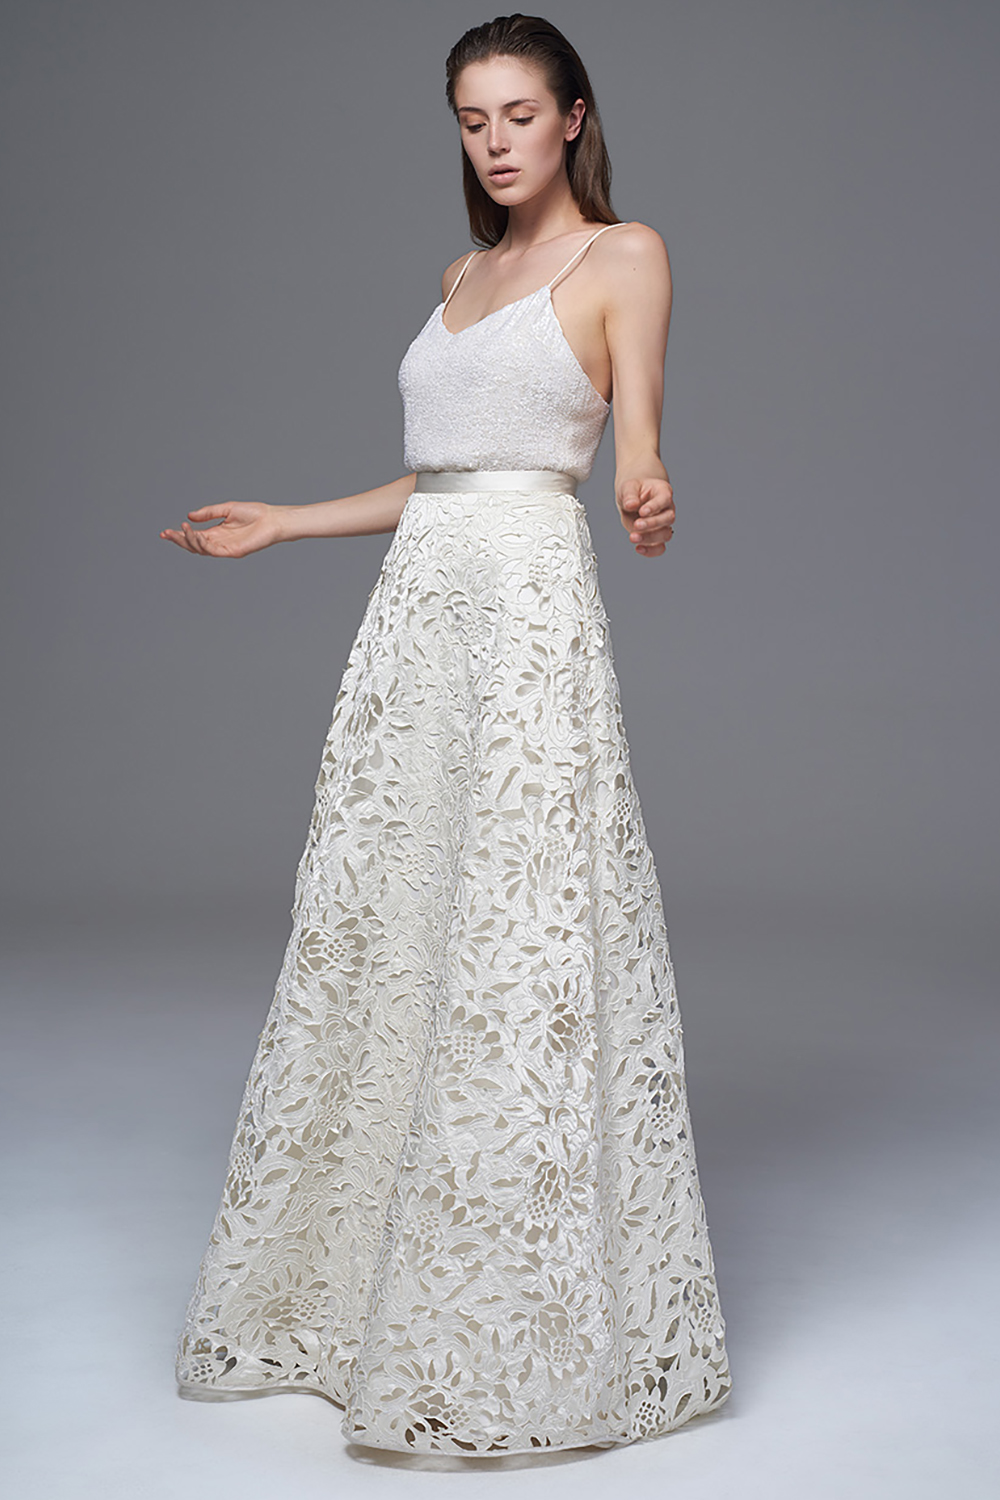 THE ISOBEL ITALIAN LASER CUT SATIN SKIRT AND THE CELINE SEQUINNED CAMISOLE WITH SPAGHETTI STRAPS. BRIDAL WEDDING DRESS BY HALFPENNY LONDON